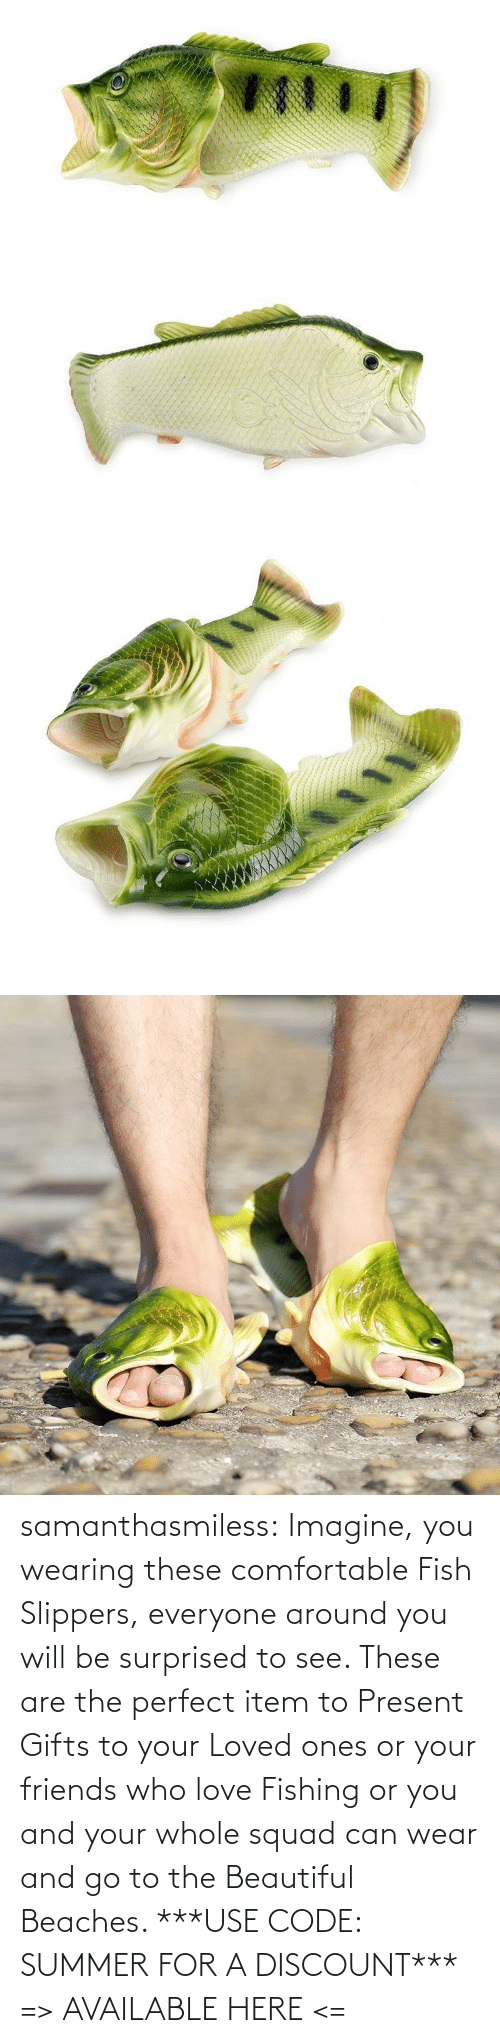 use: samanthasmiless: Imagine, you wearing these comfortable Fish Slippers, everyone around you will be surprised to see. These are the perfect item to Present Gifts to your Loved ones or your friends who love Fishing or you and your whole squad can wear and go to the Beautiful Beaches.  ***USE CODE: SUMMER FOR A DISCOUNT*** => AVAILABLE HERE <=